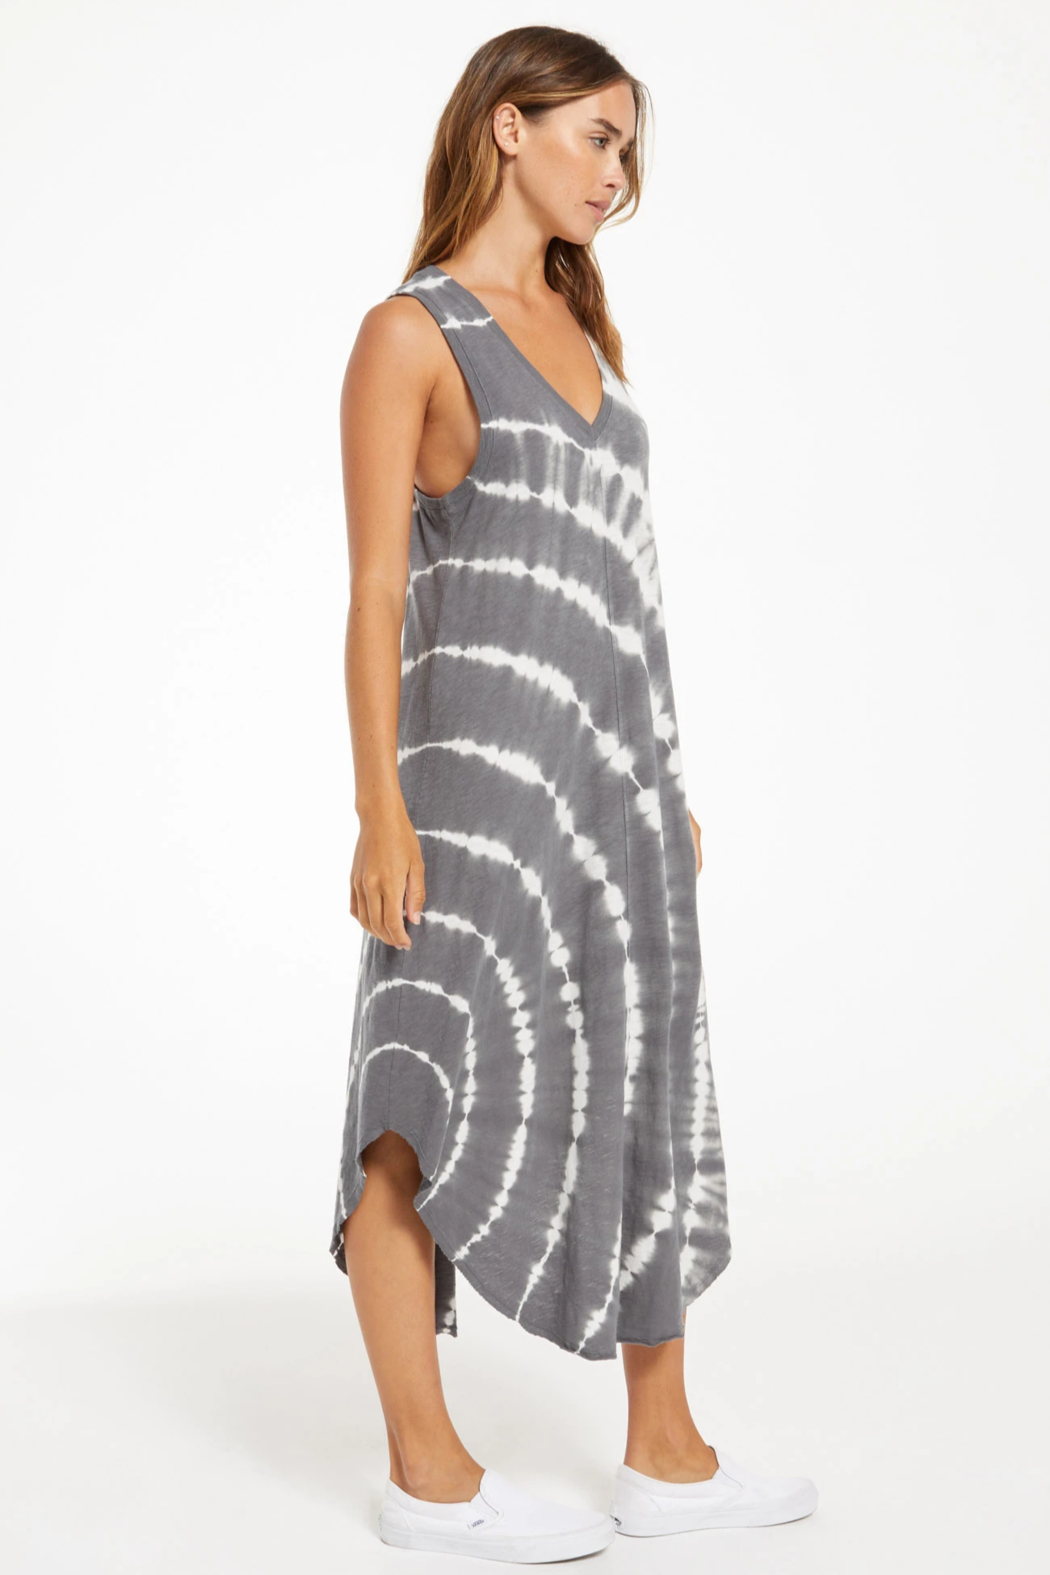 z supply Reverie Spiral Tie-Dye Dress - Back Cropped Image